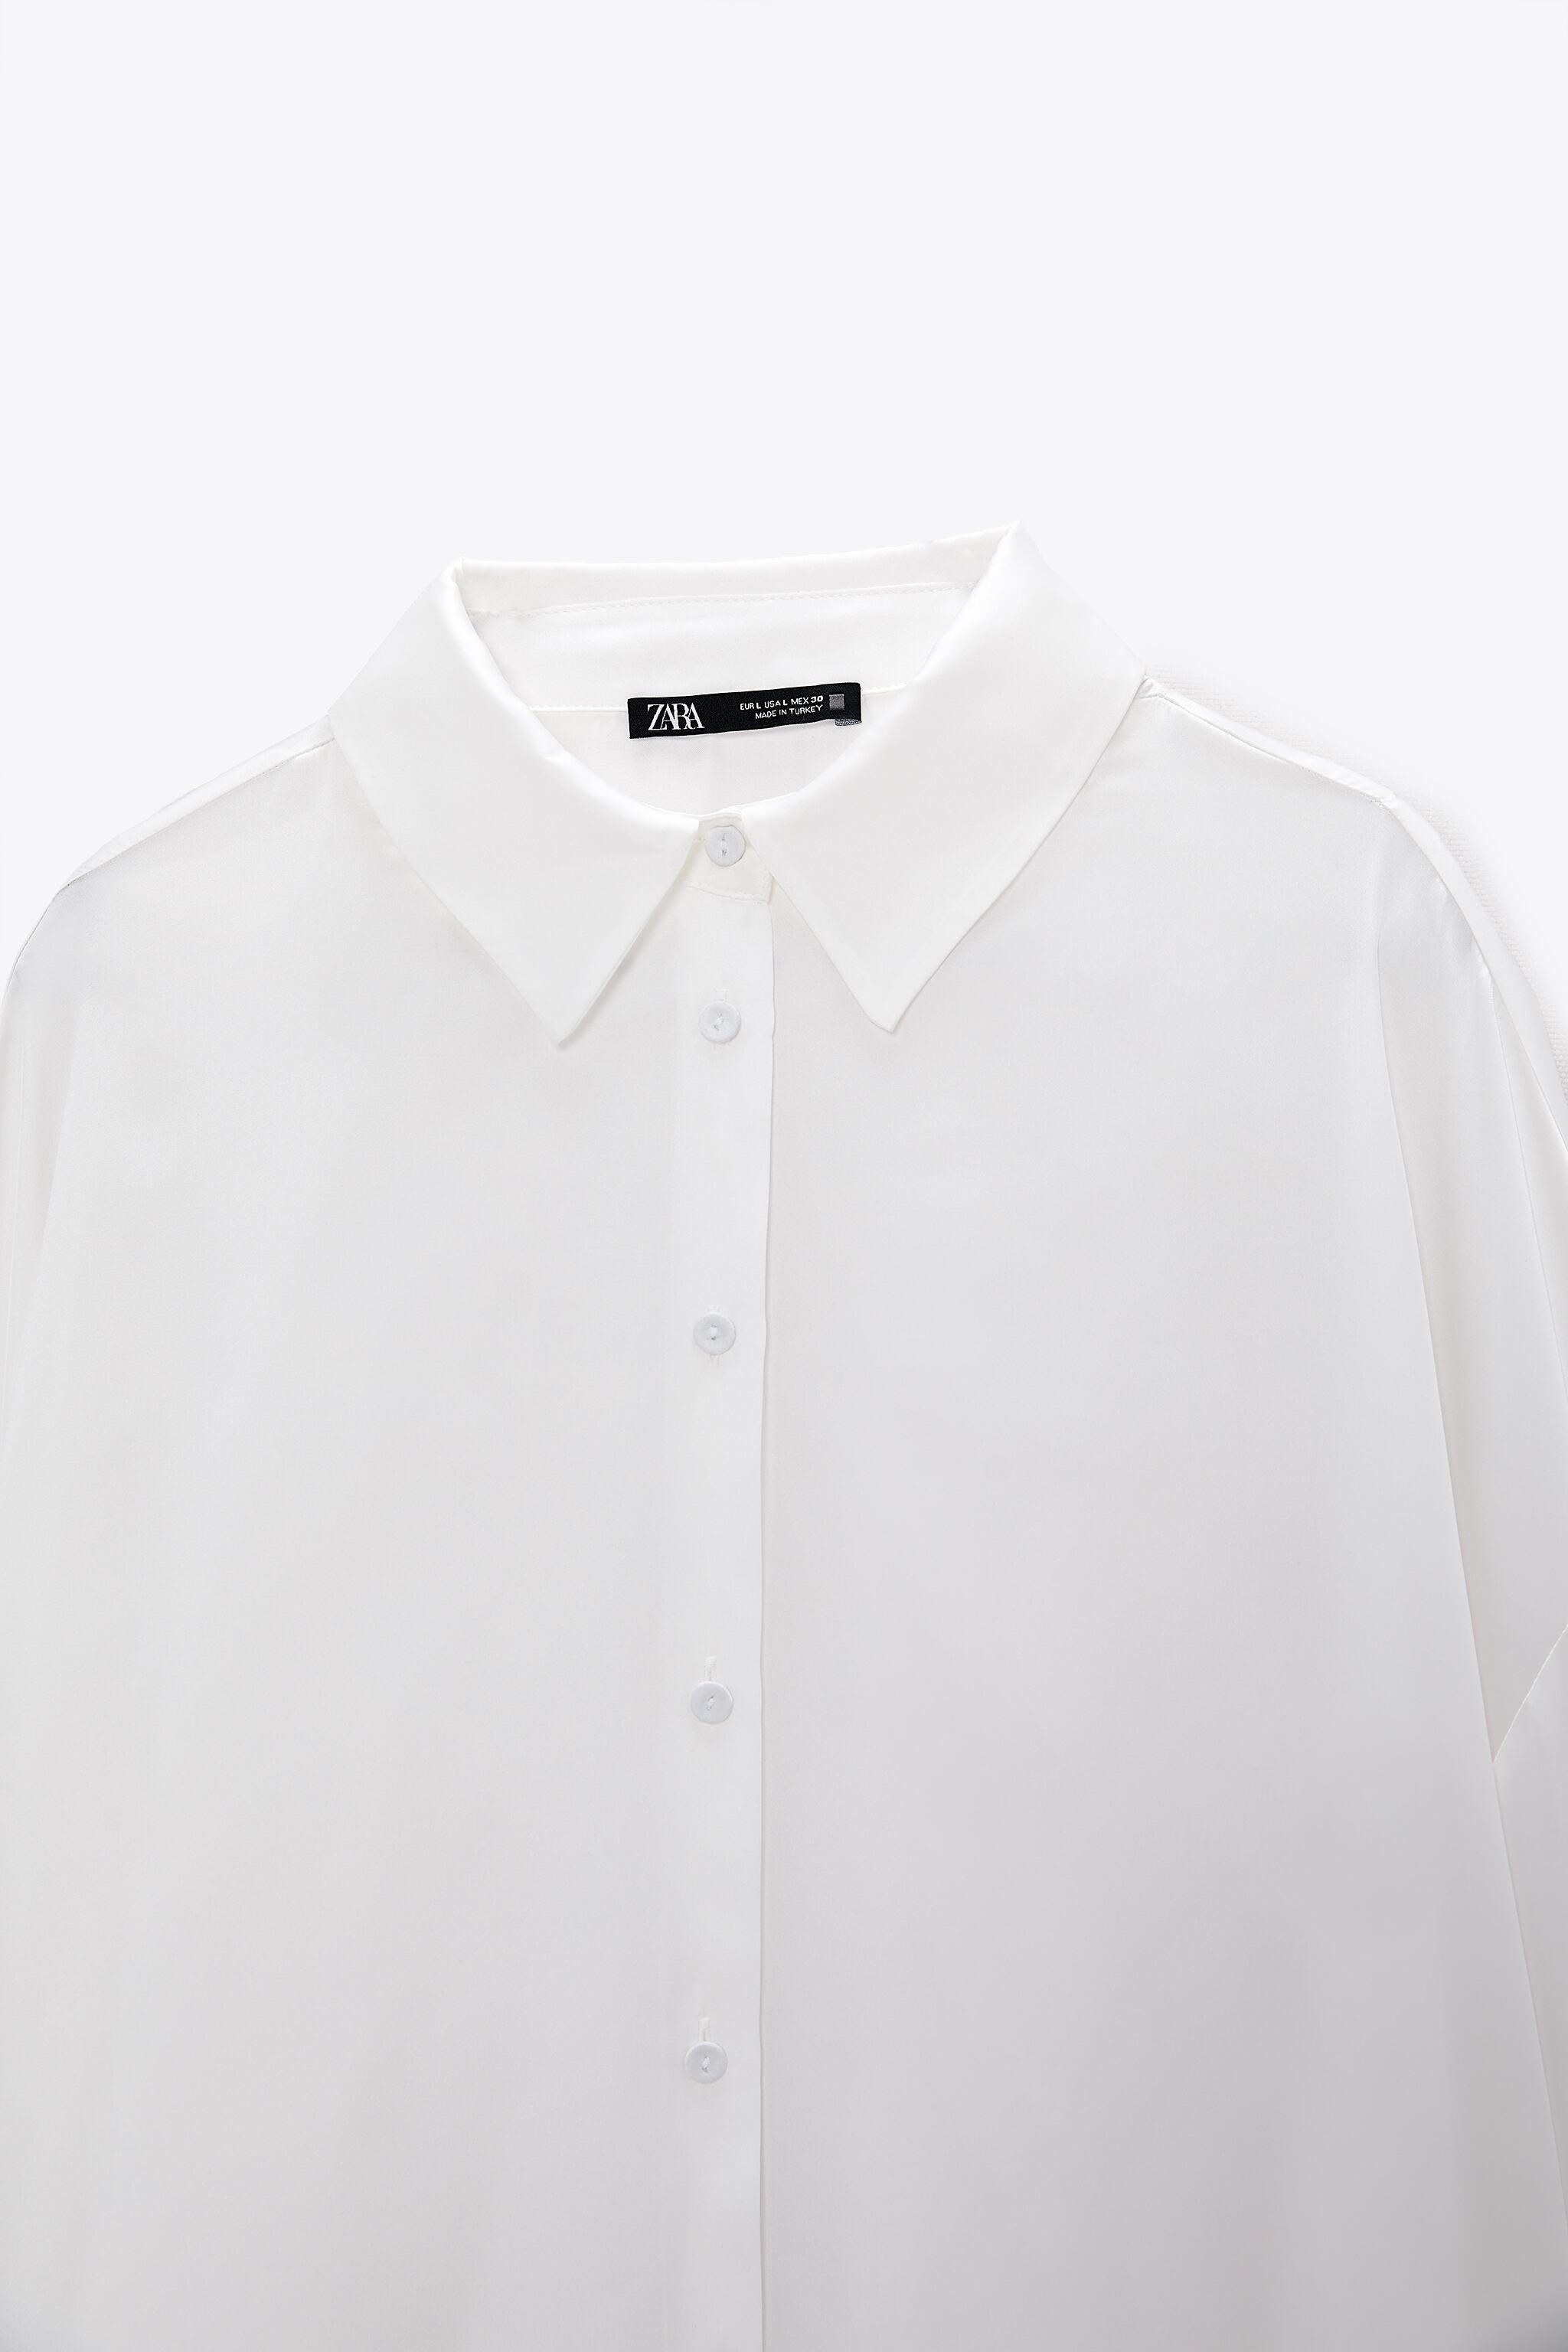 FLOWY LINED BUTTON SHIRT 8